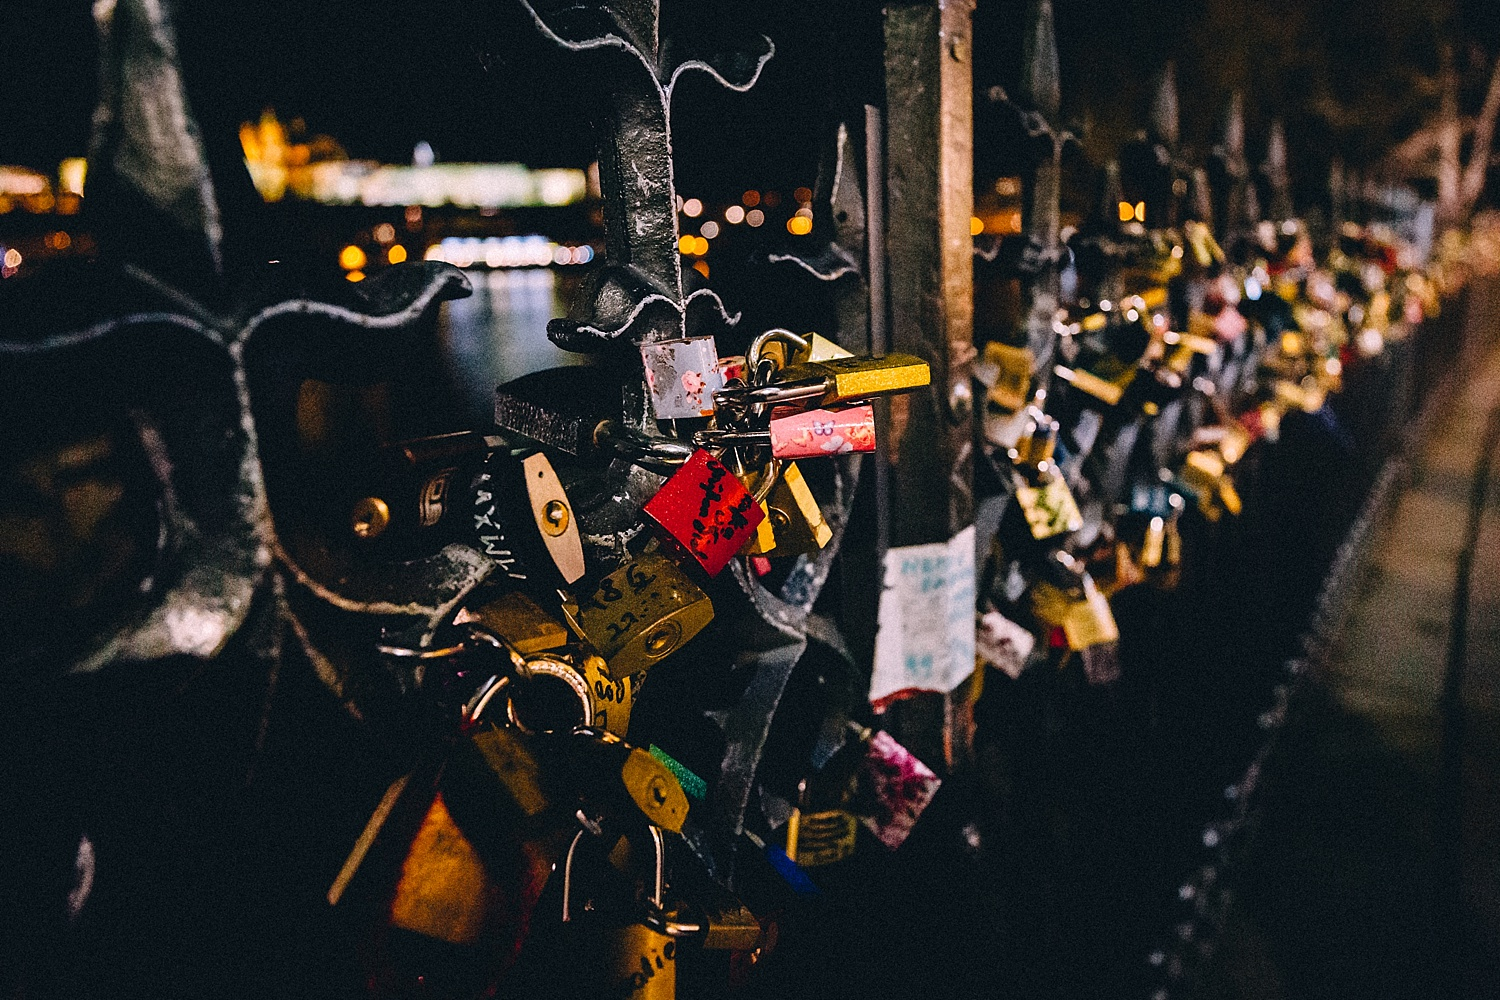 Taken on the Charles Bridge, Prague